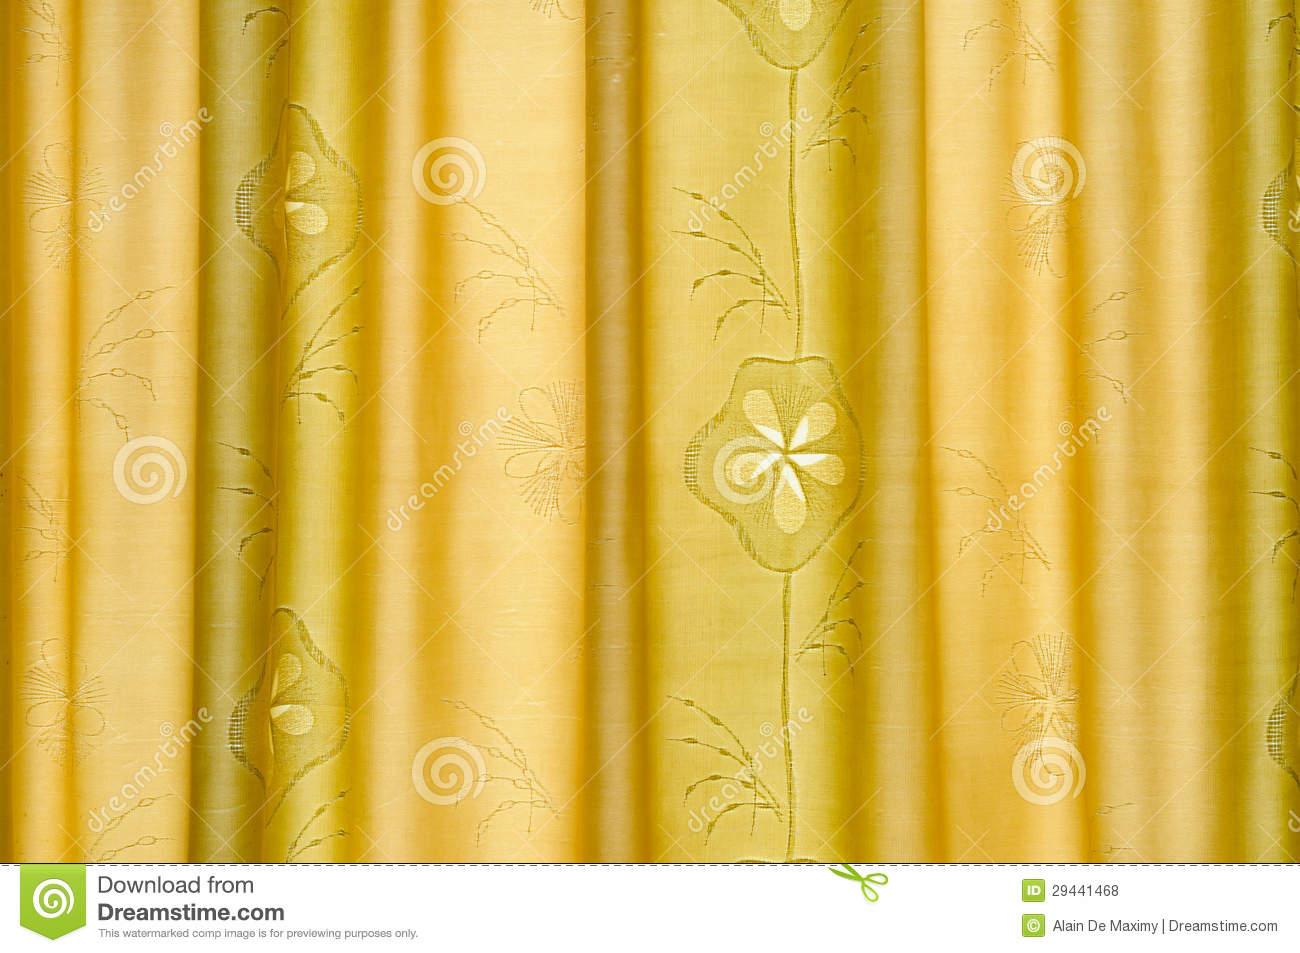 Curtain texture royalty free stock photos image 29441468 for Window curtains texture